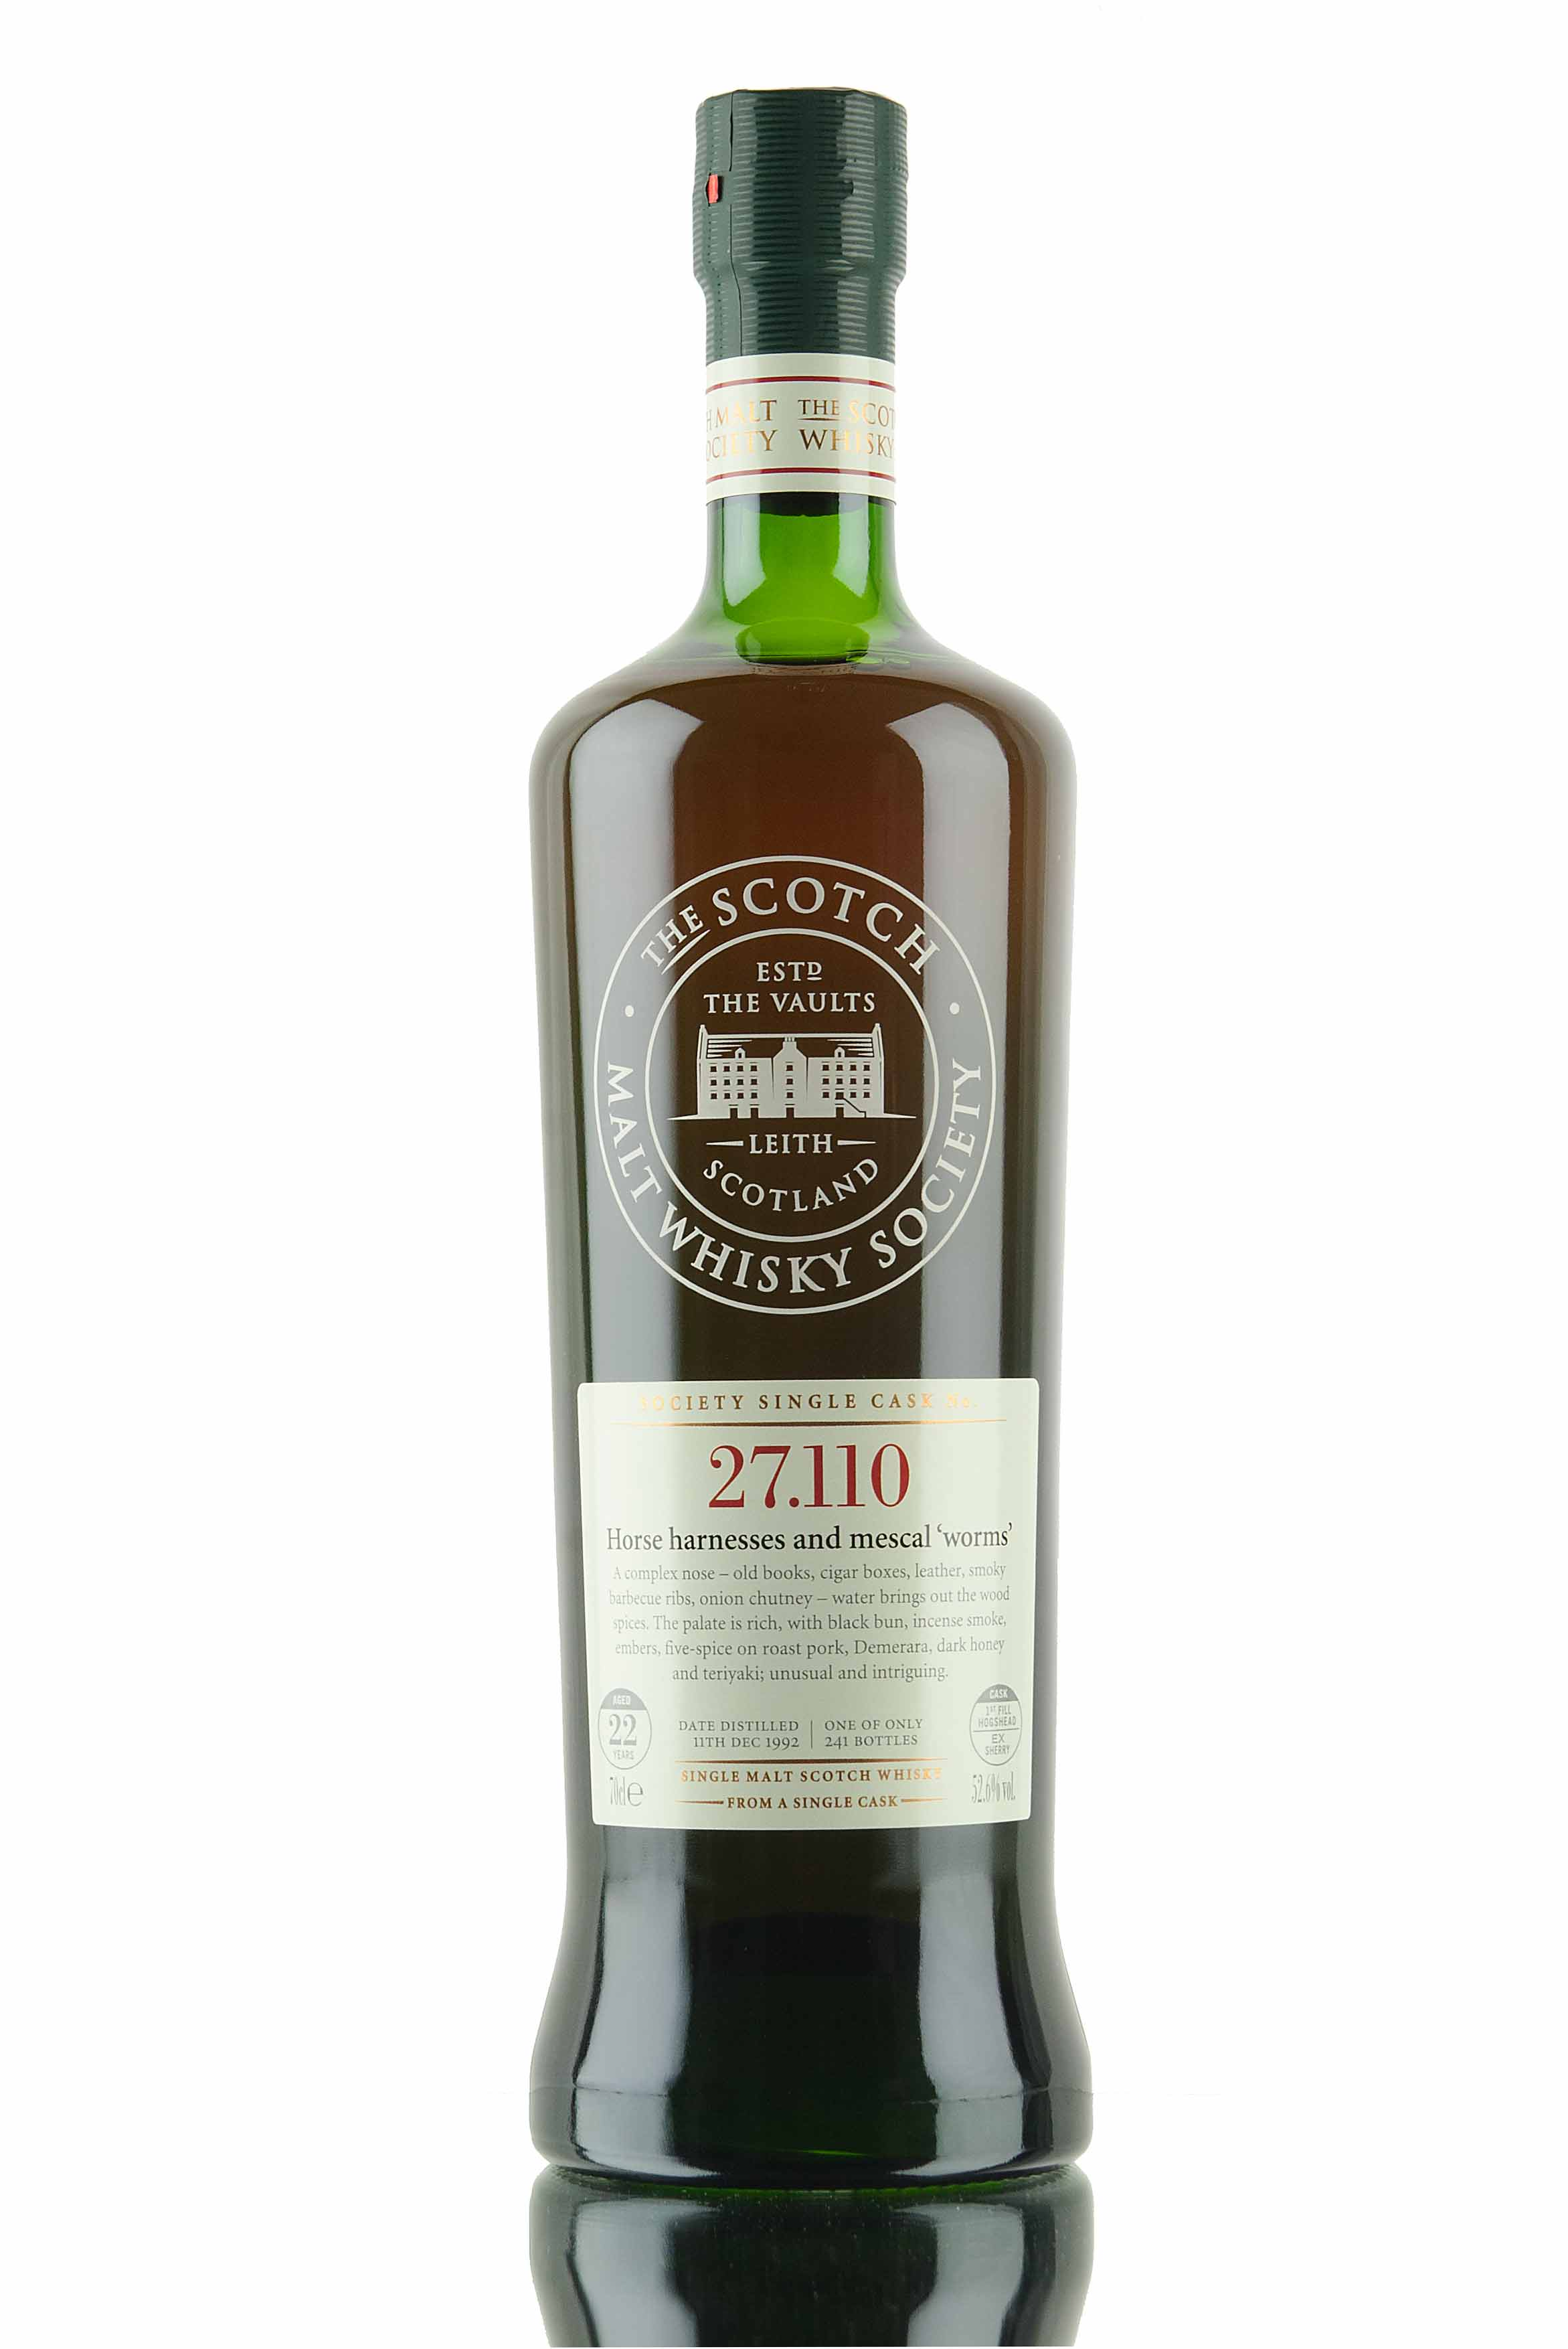 Springbank 22 Year Old - 1992 / SMWS 27.110